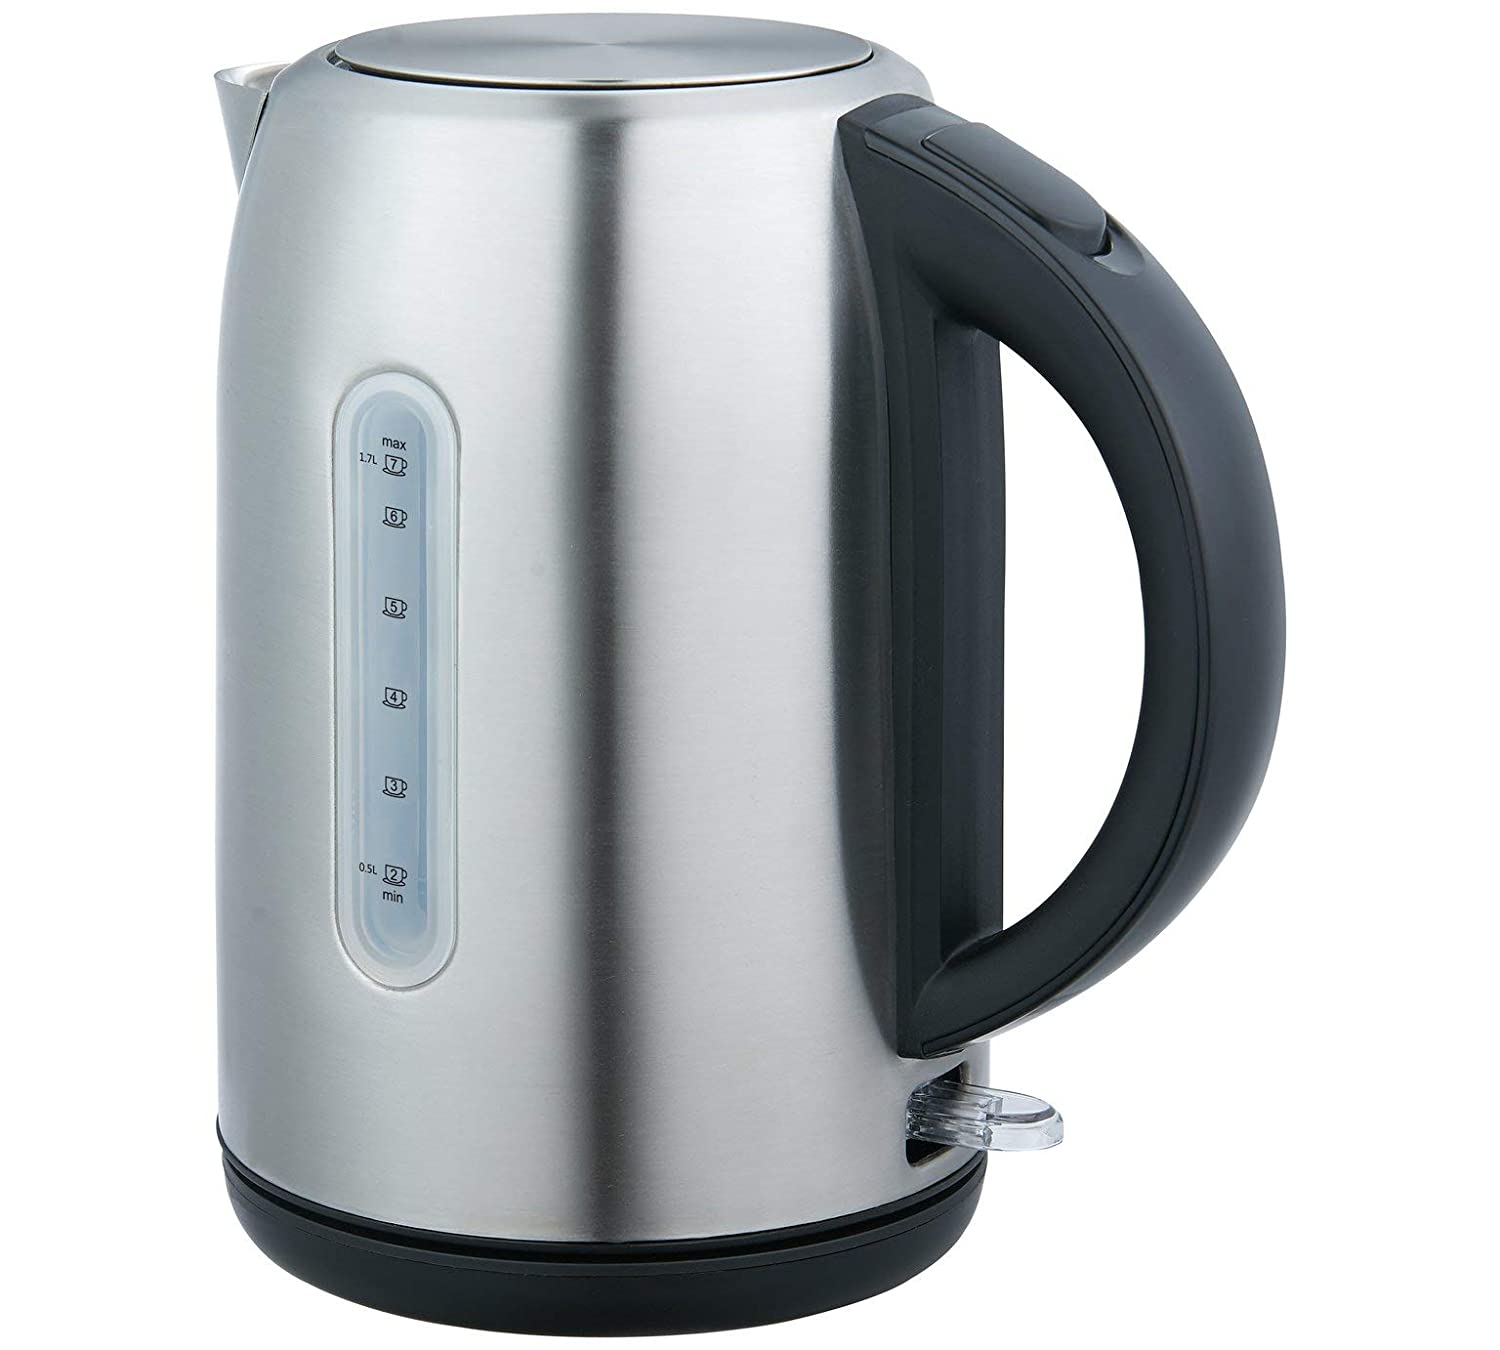 Cookworks 2 2kw 1 7l Cordless Jug Boil Dry Protection Kettle Grey Home Kitchen Small Kitchen Appliances